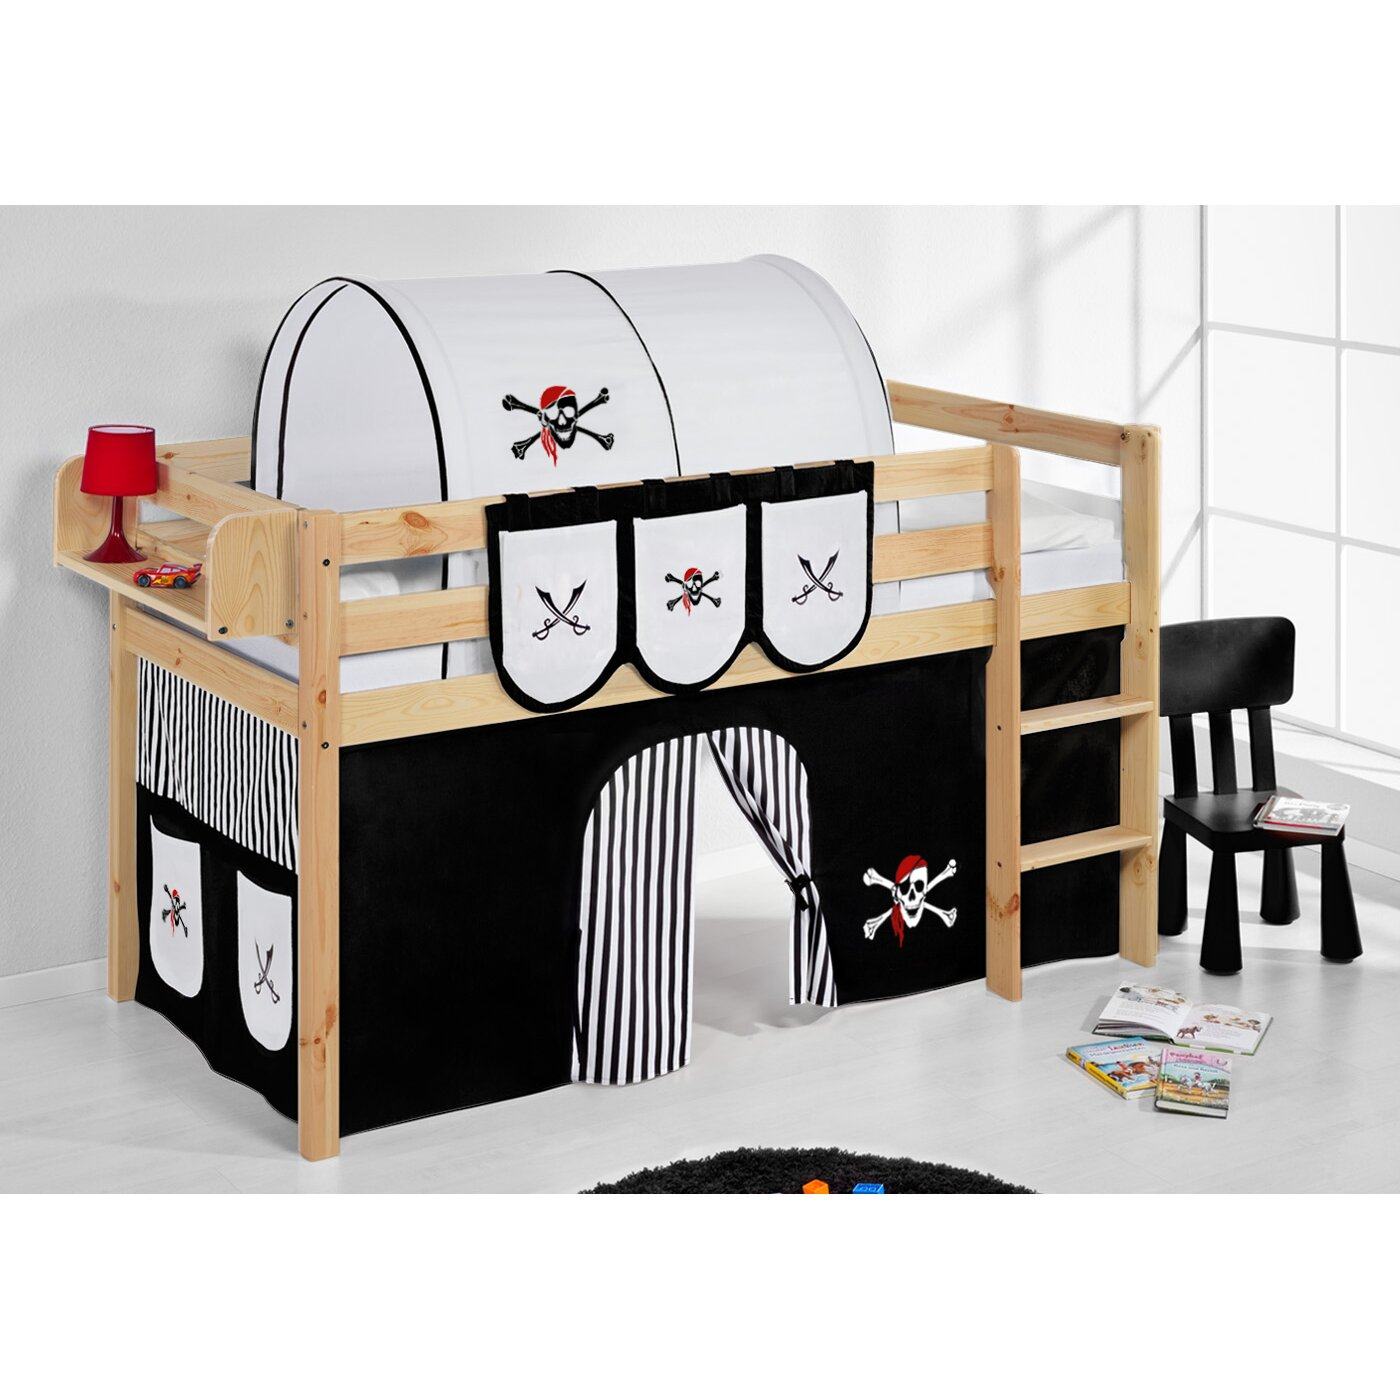 lilokids hochbett pirat mit vorhang und lattenrost 90 x 200 cm. Black Bedroom Furniture Sets. Home Design Ideas